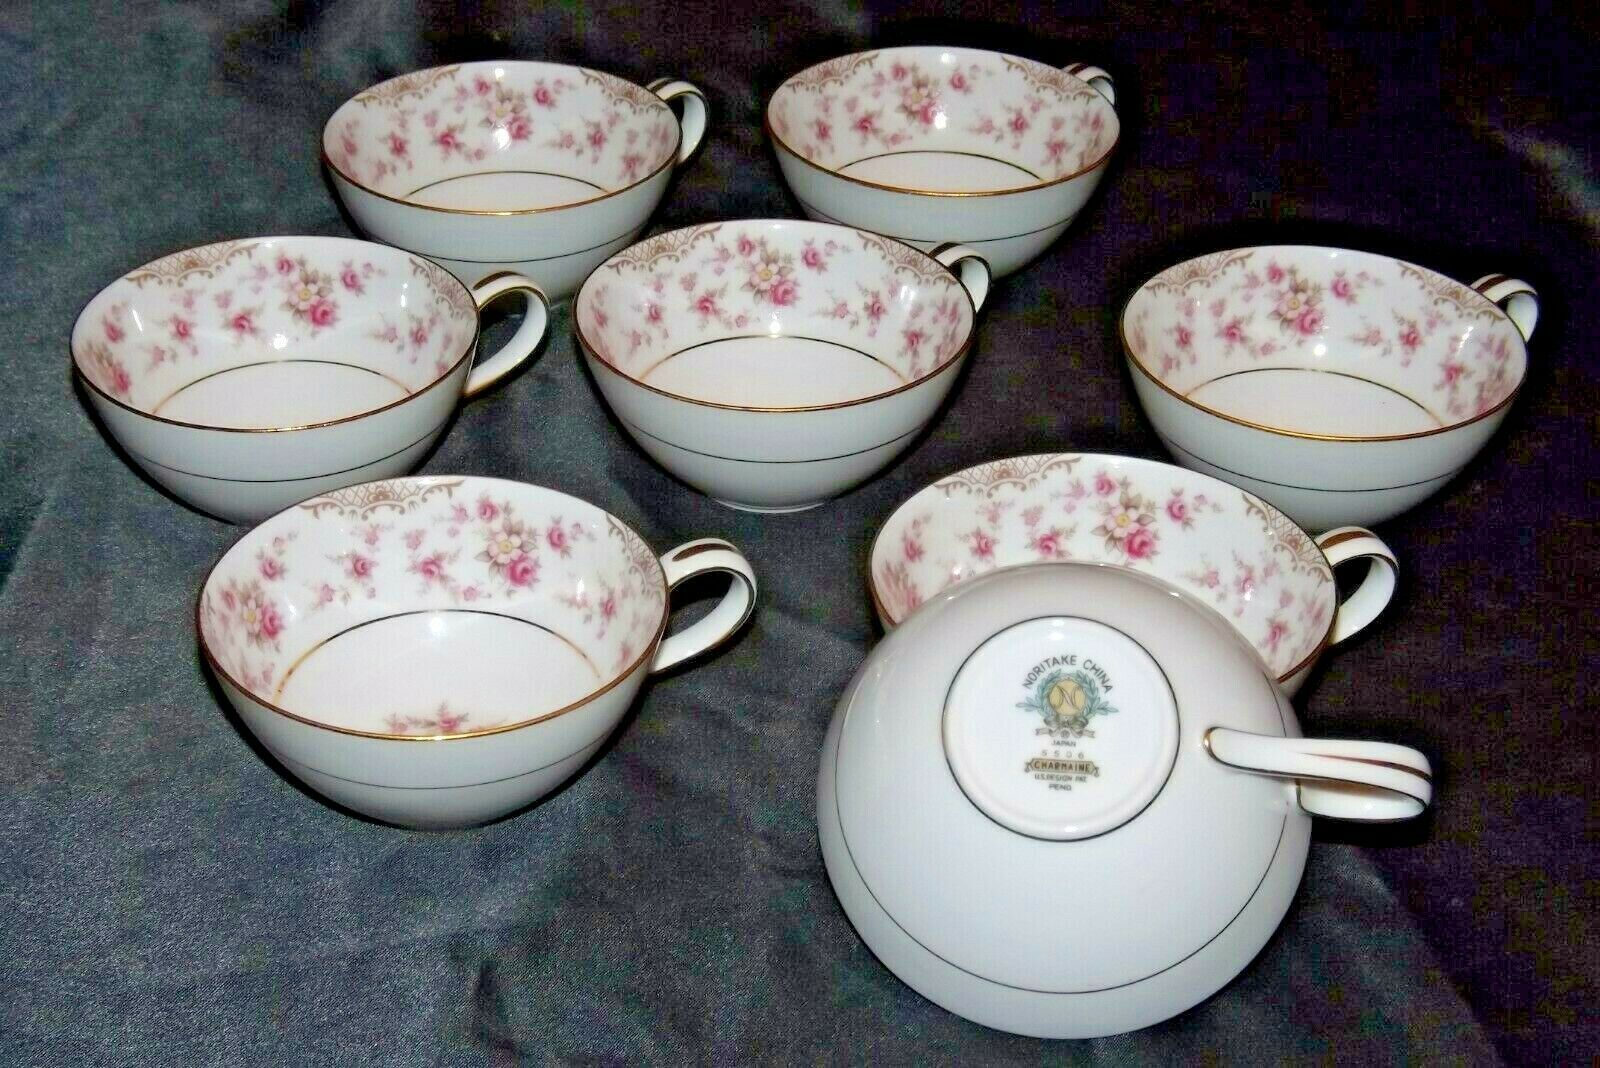 Noritake China (8 Cups) Charmaine 5506 AA20-2360A Vintage